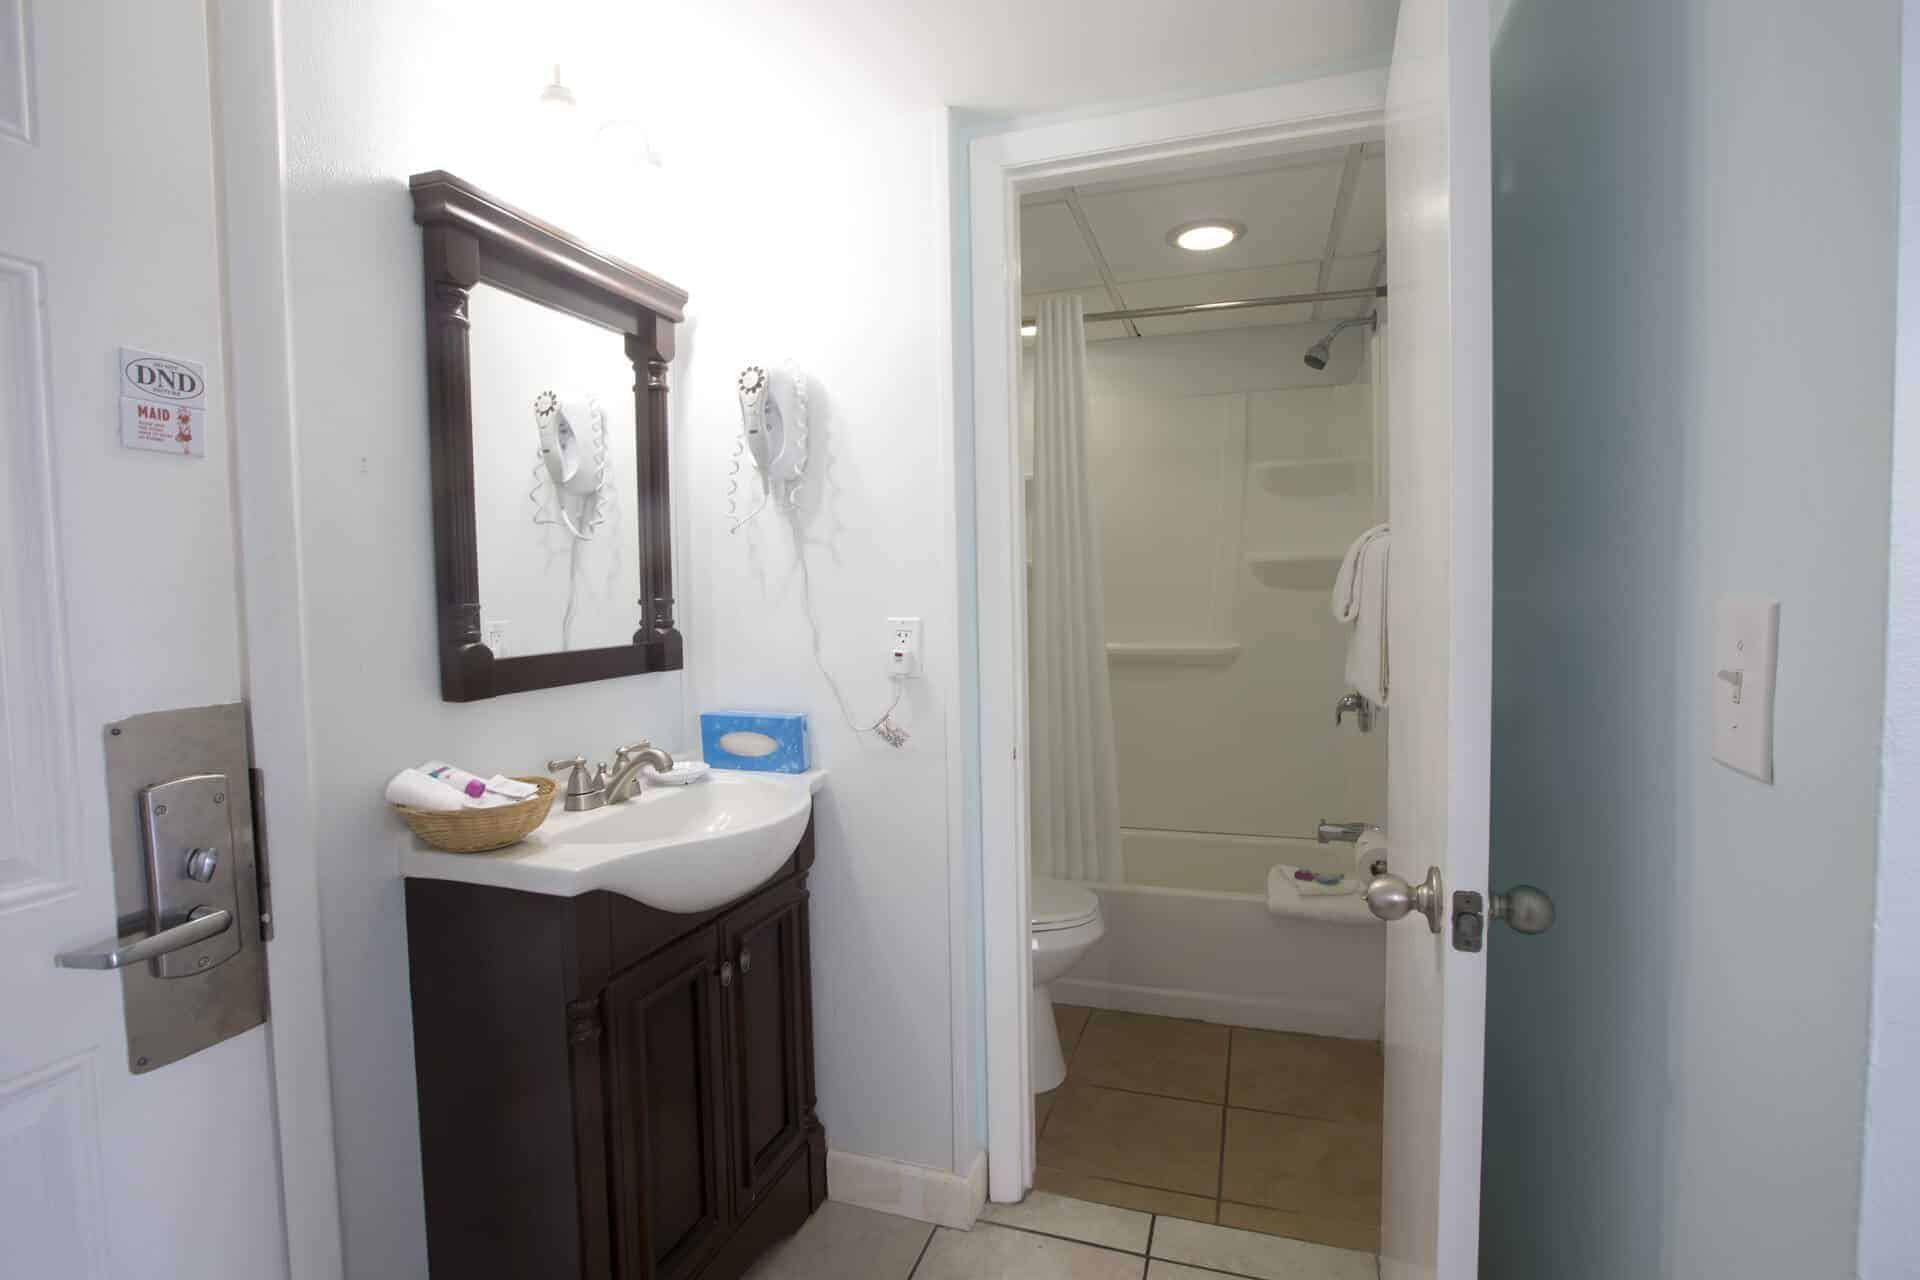 Bay Inn Deluxe Suite with Tub Shower combination